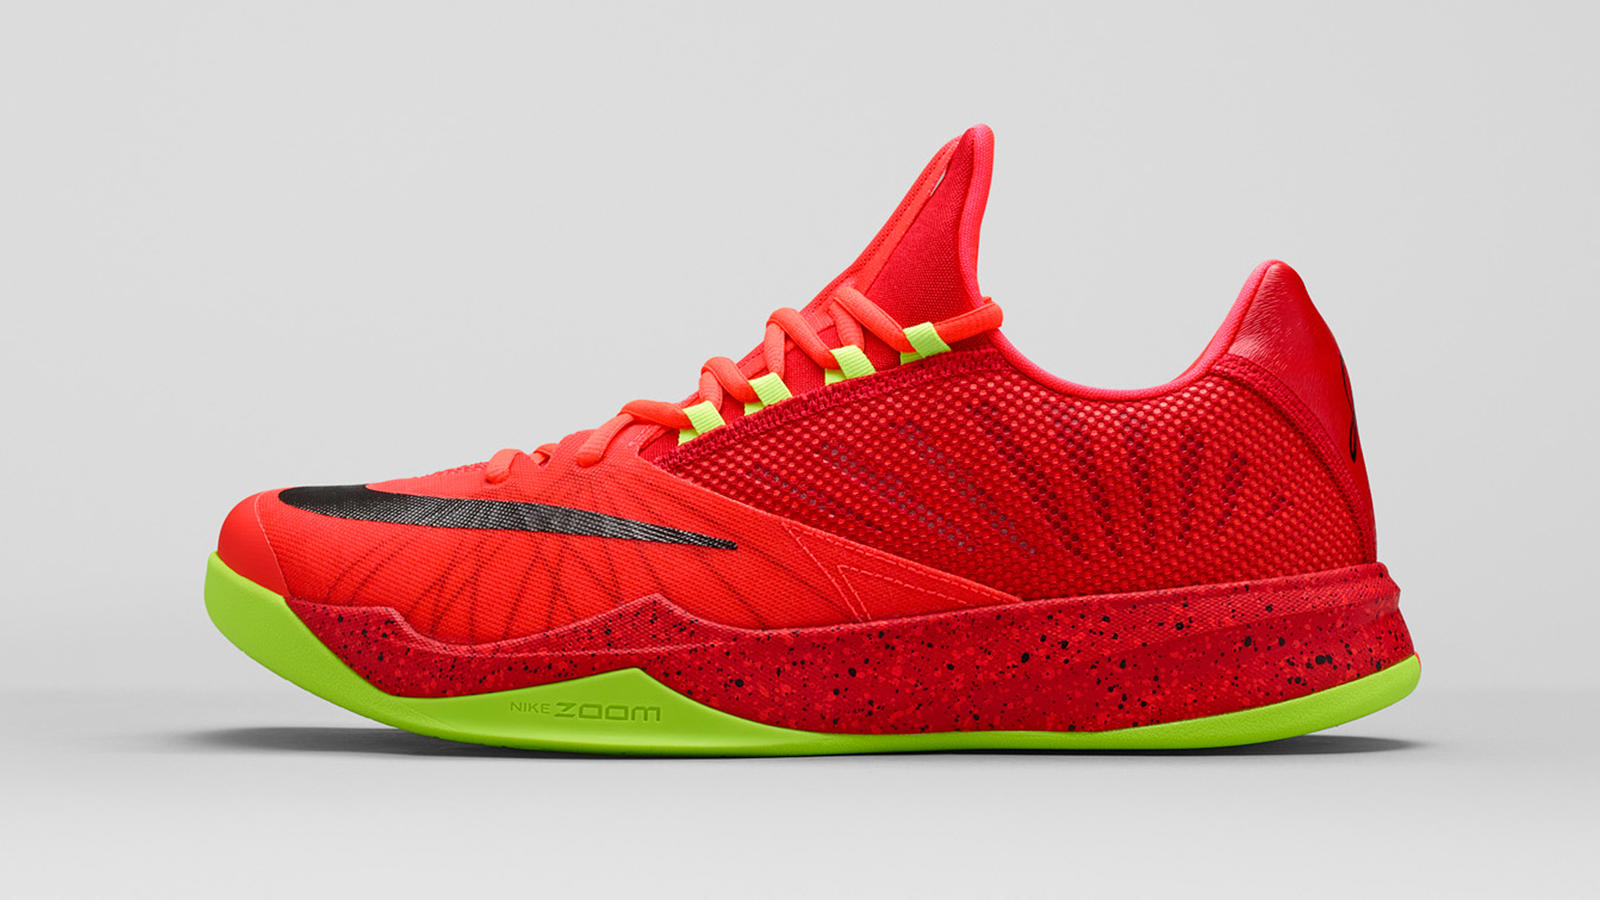 The Nike Run The One shoe designed by Tony Hardman and worn by All-Star  James Harden